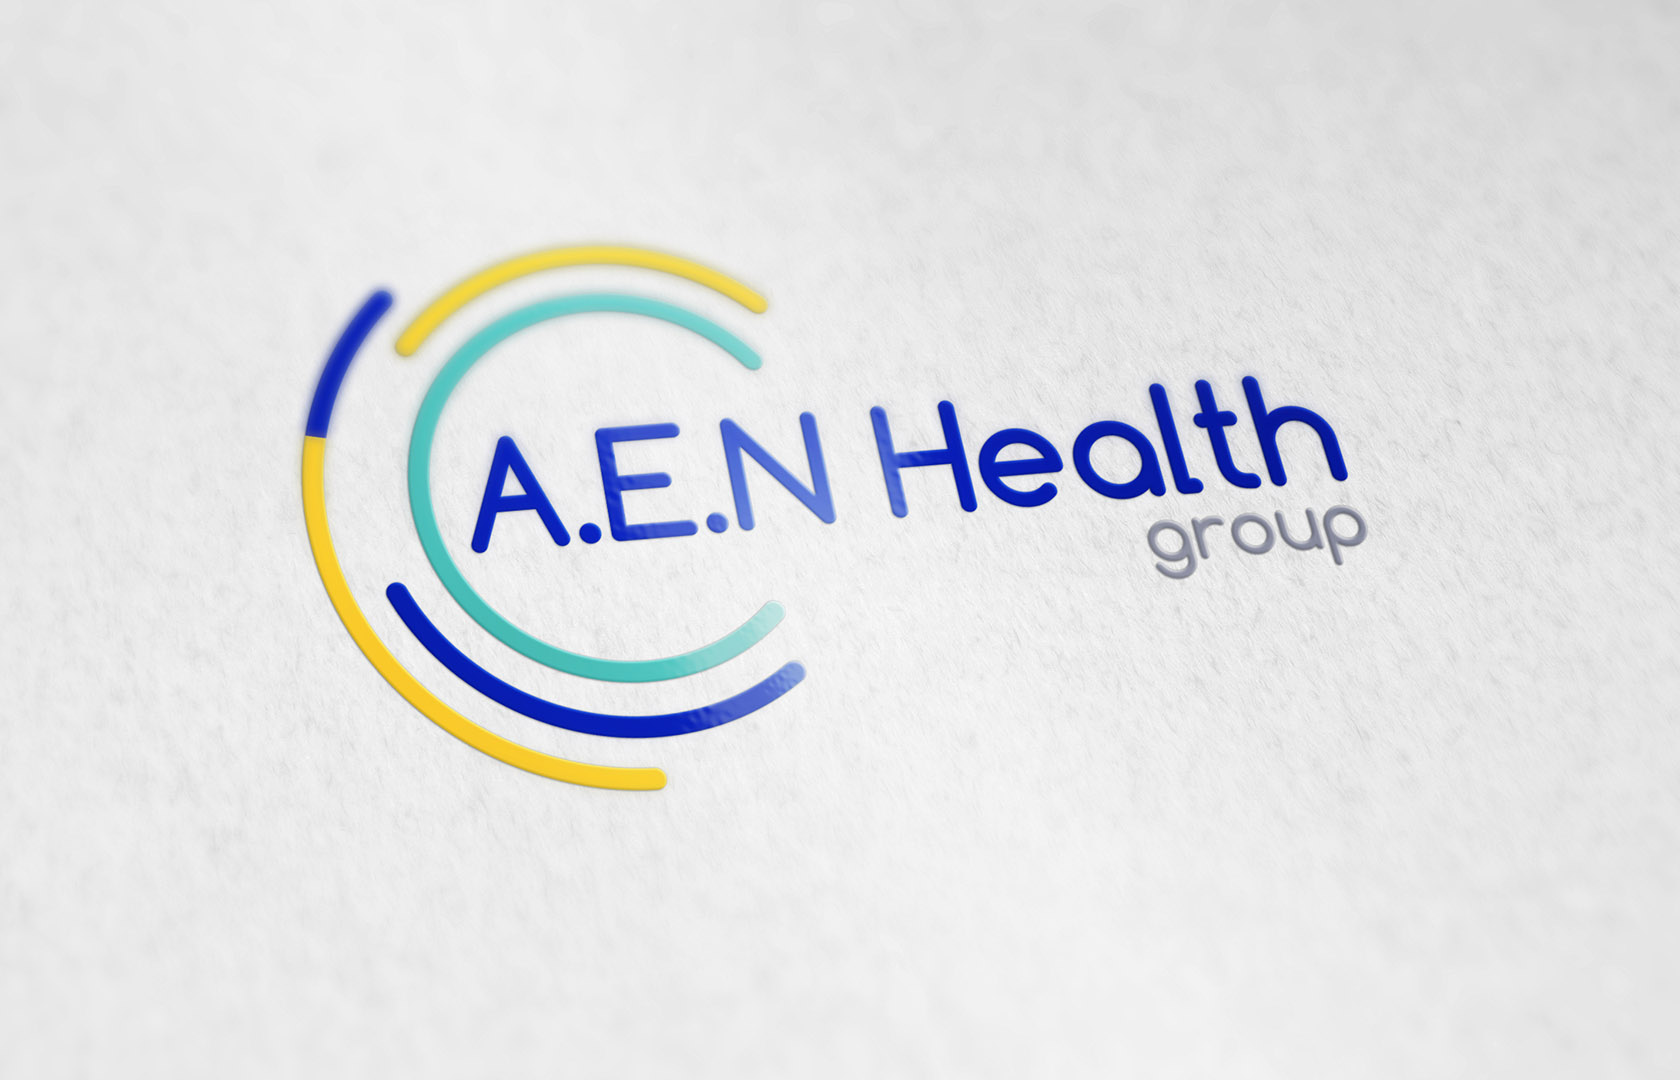 Aen health group logo